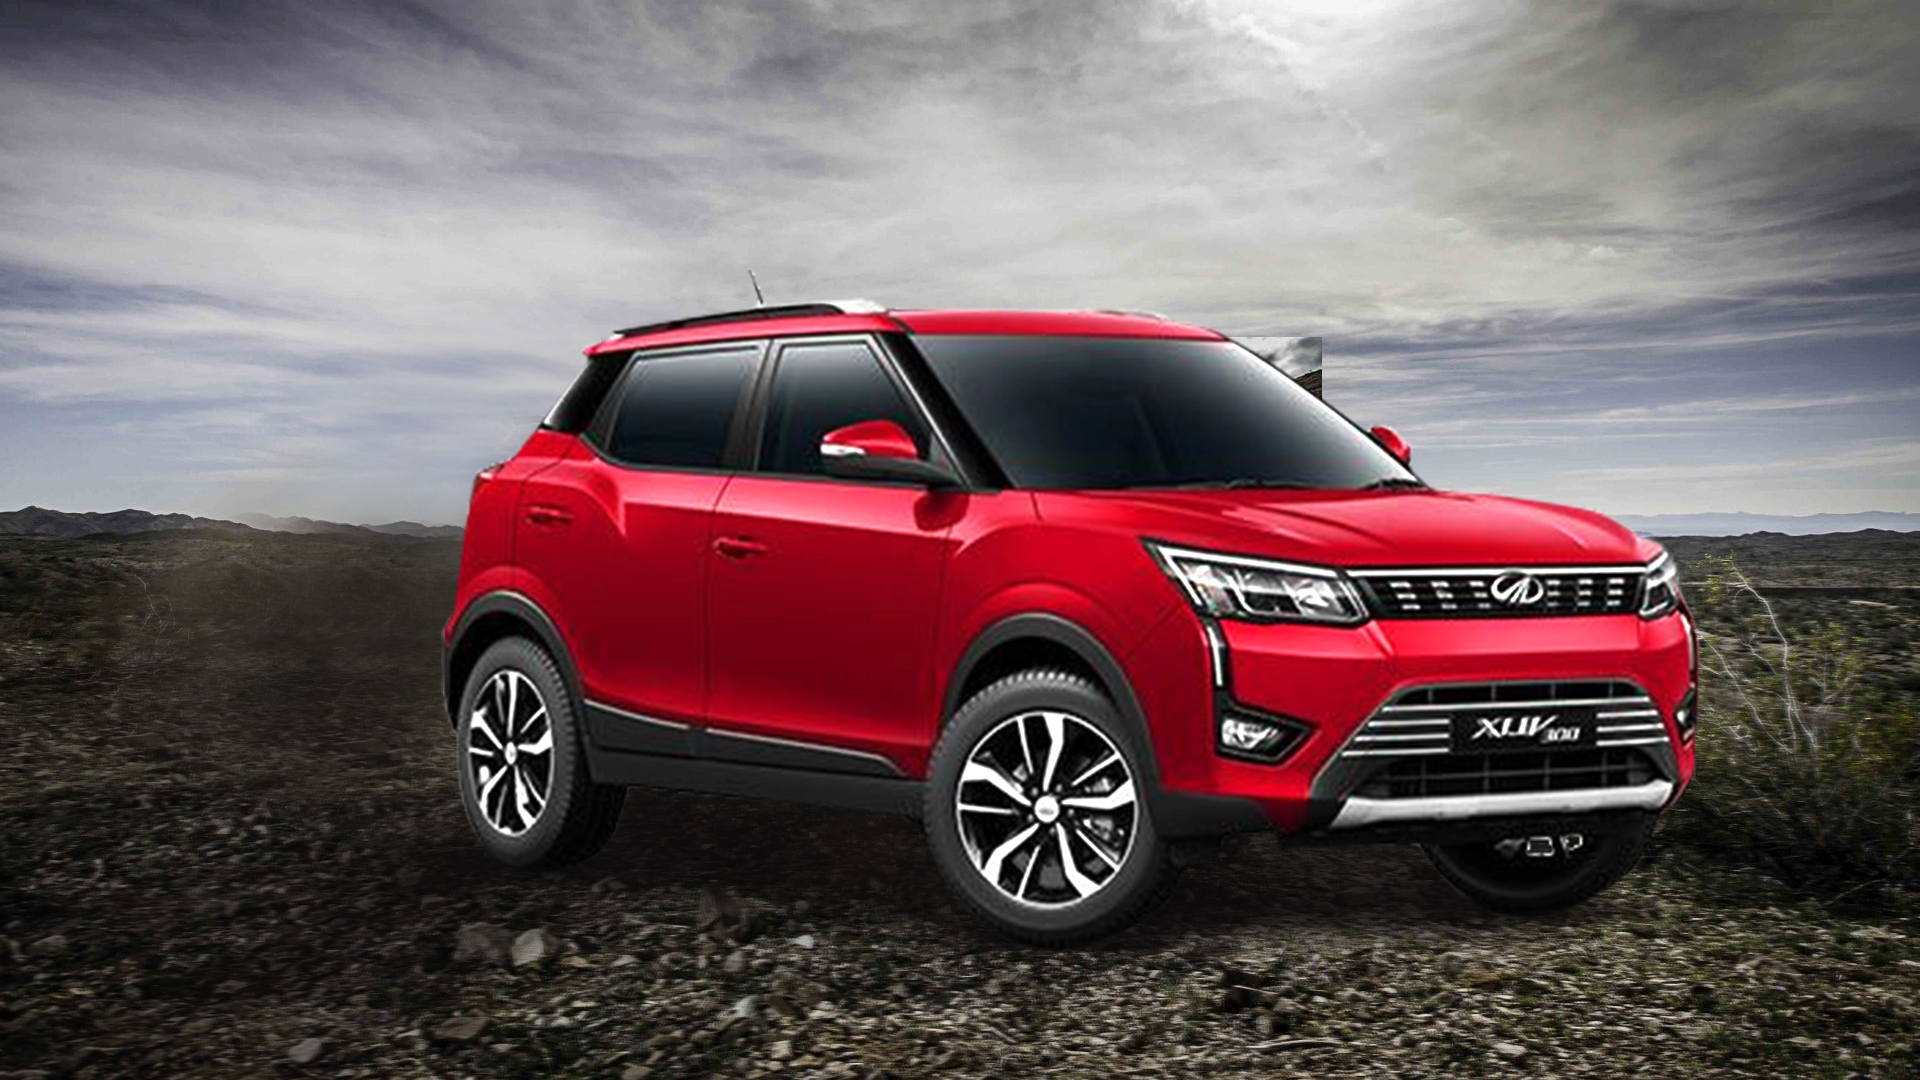 Mahindra XUV 300 Review: Things You Need to Know About It